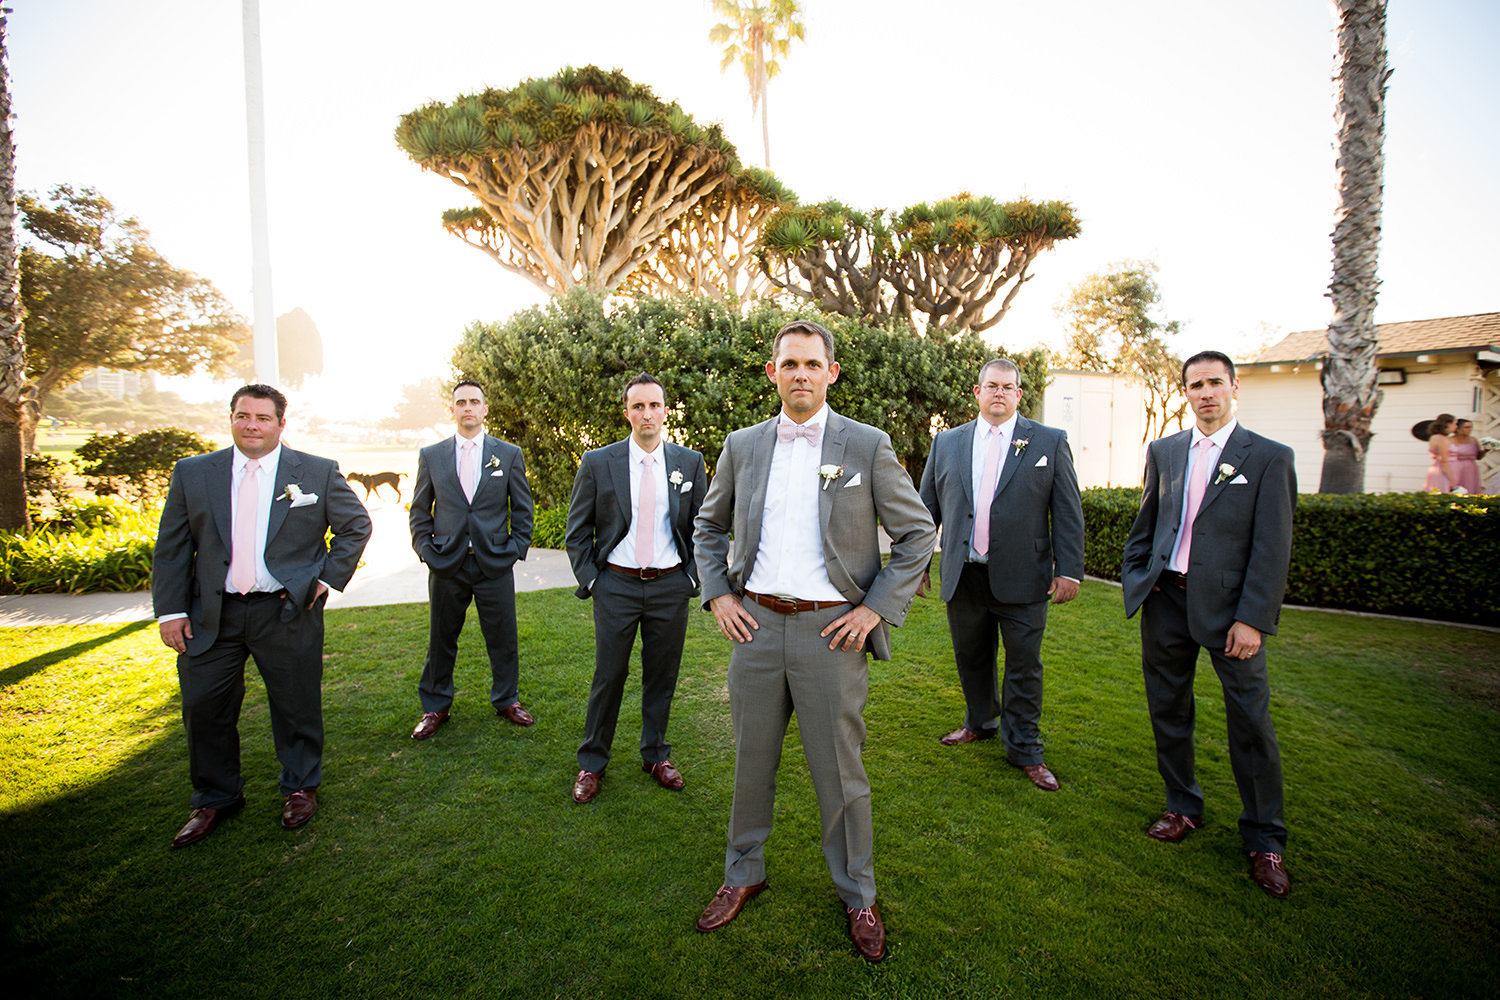 Creative posing ideas for groomsmen